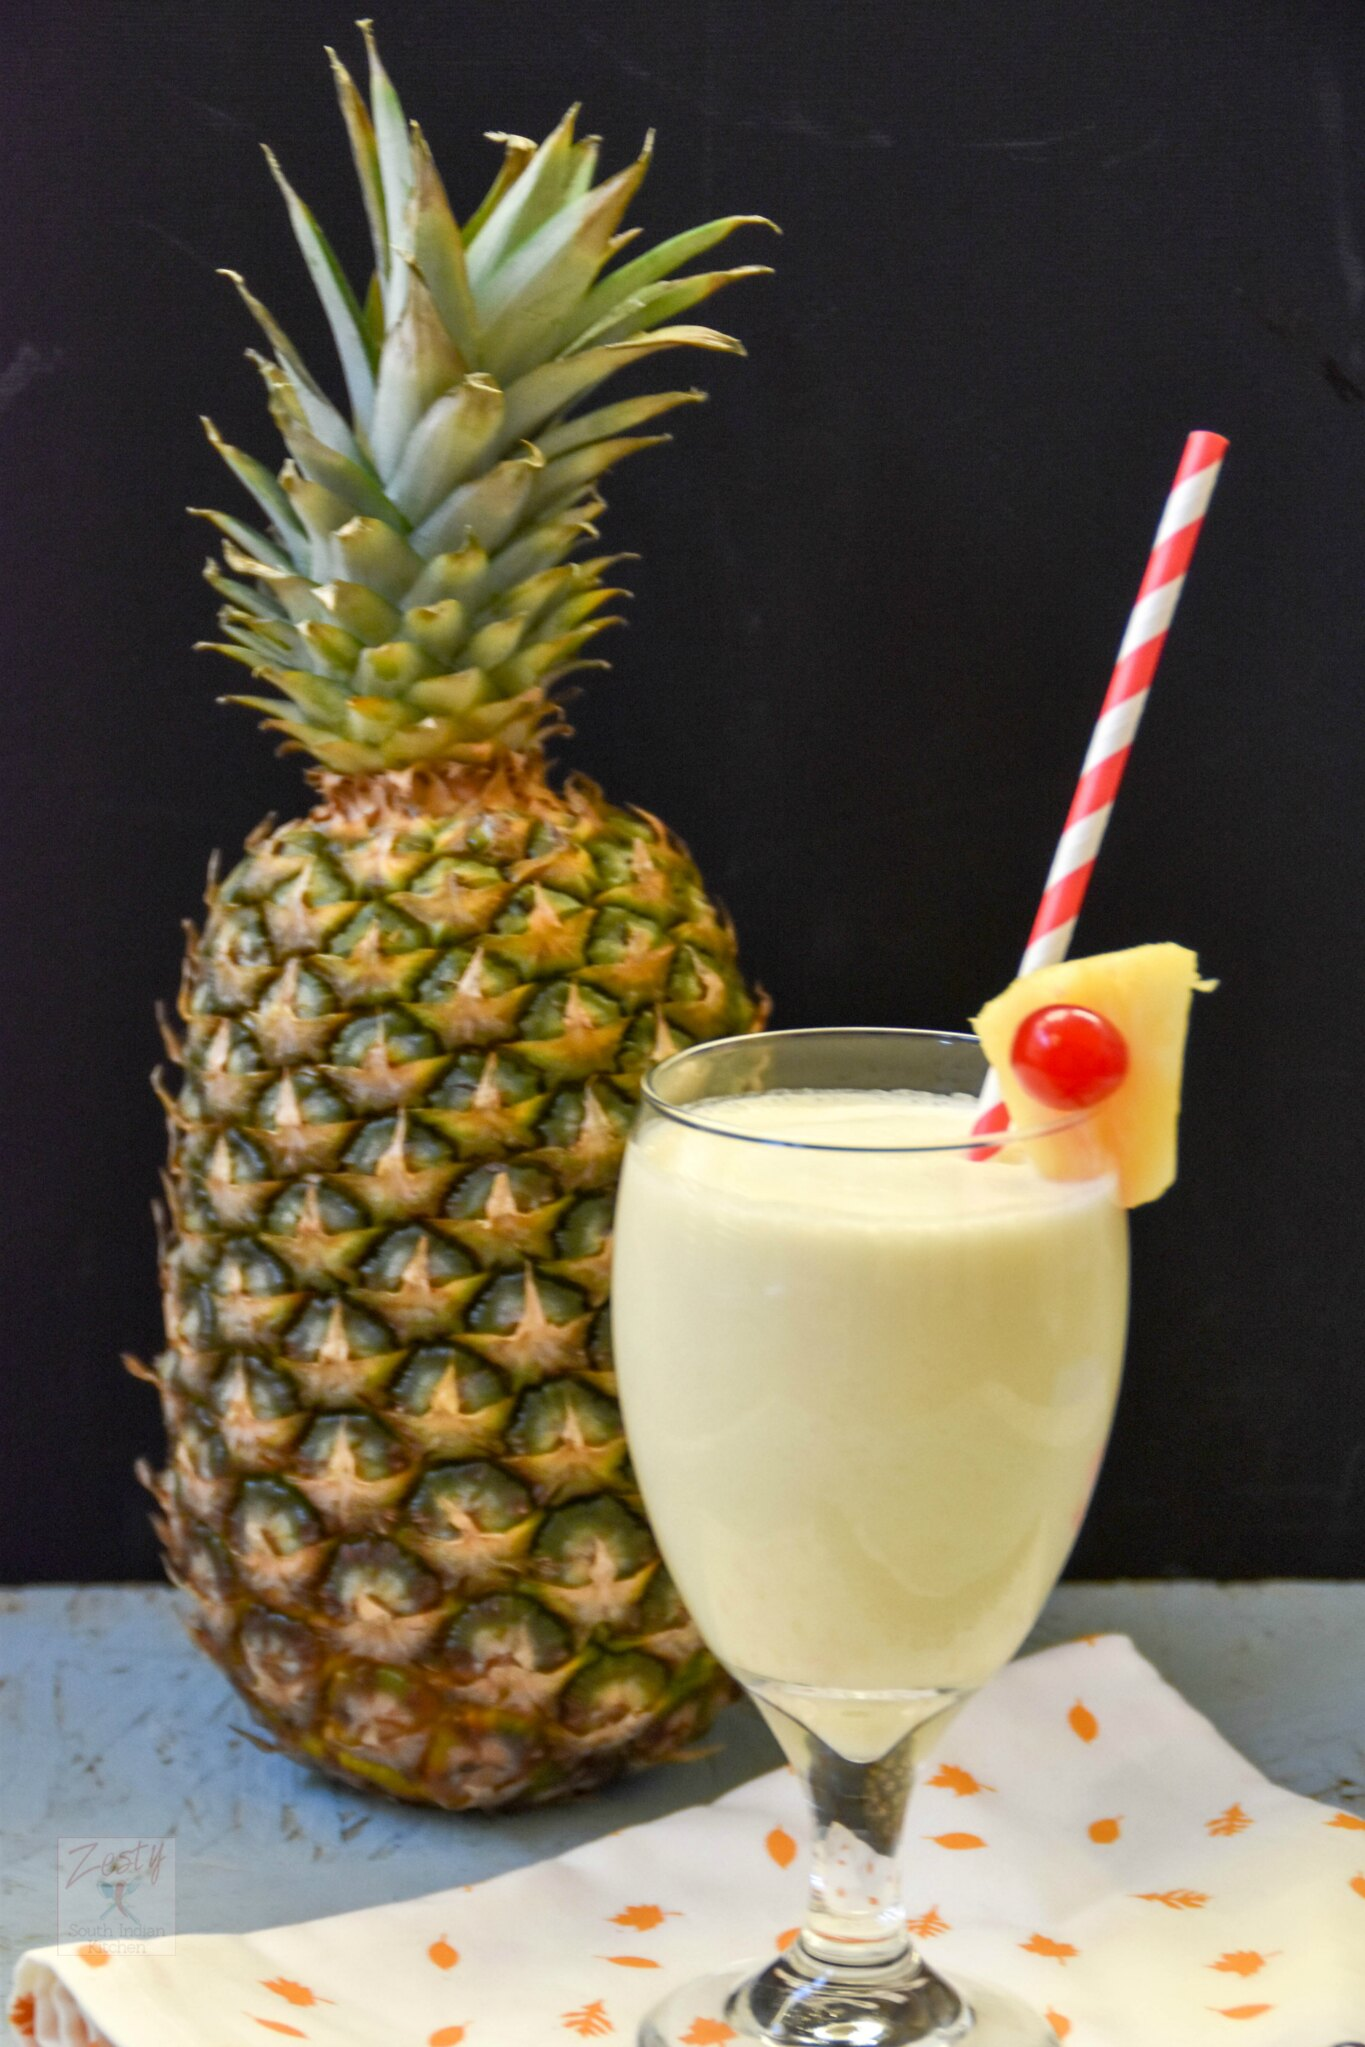 VIRGIN PINA COLADA ZESTY SOUTH INDIAN KITCHEN